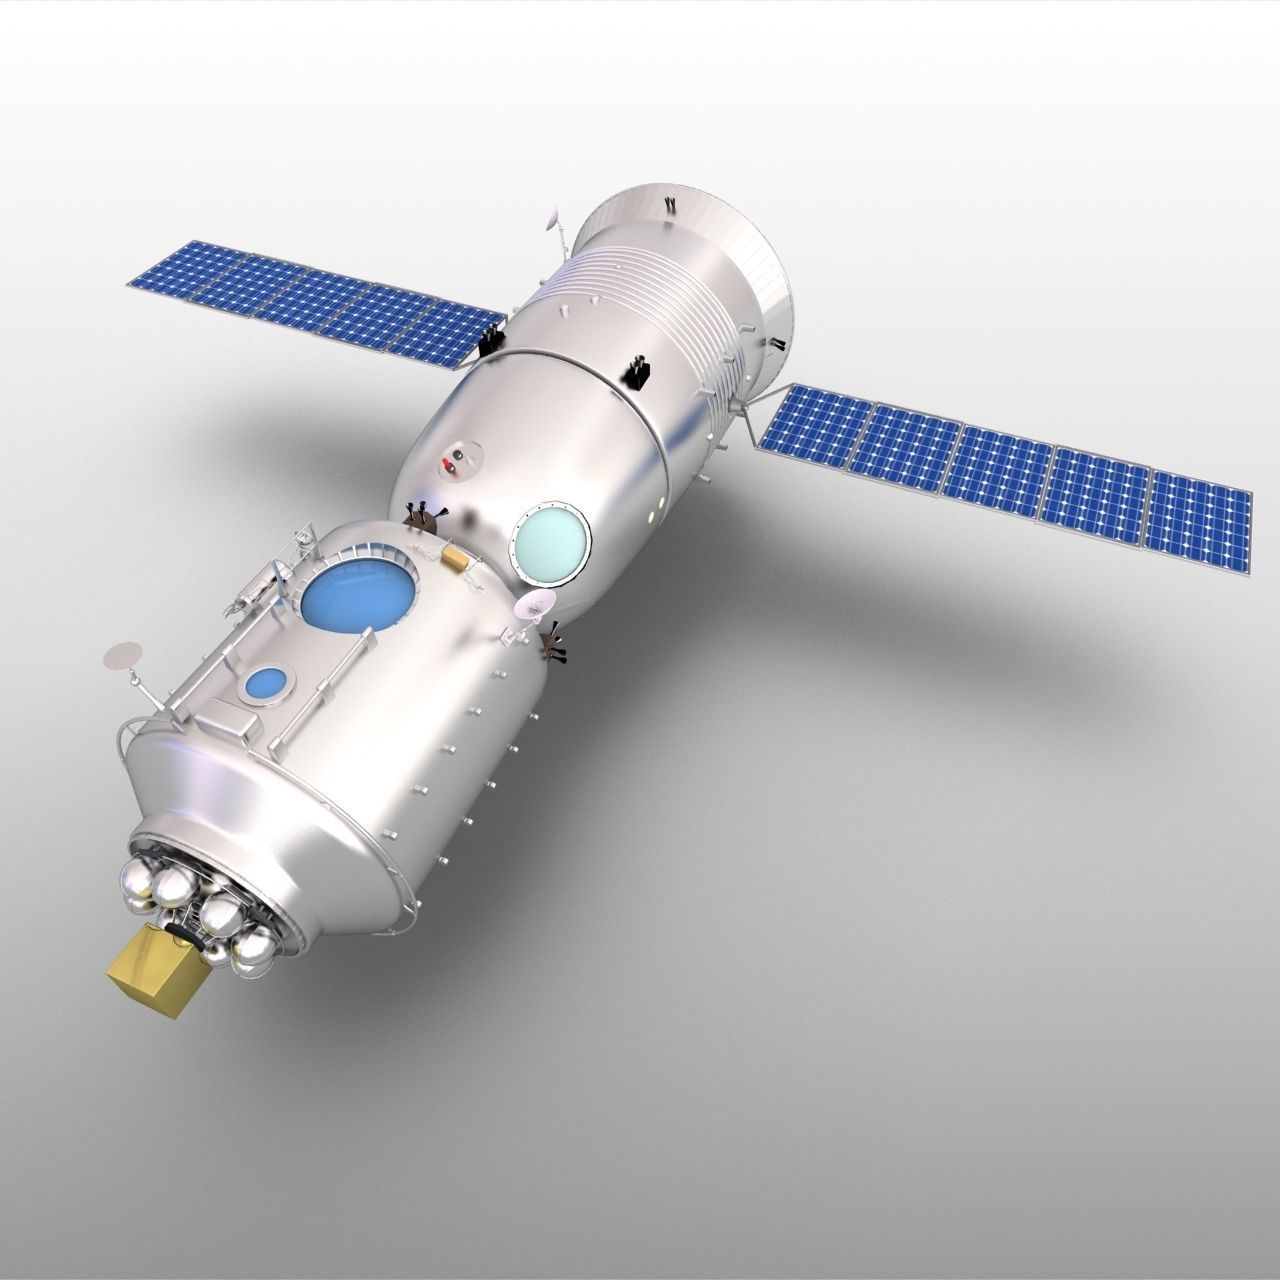 Shenzhou7 Spaceship earth Tiangong1 spacecraft manned laboratory